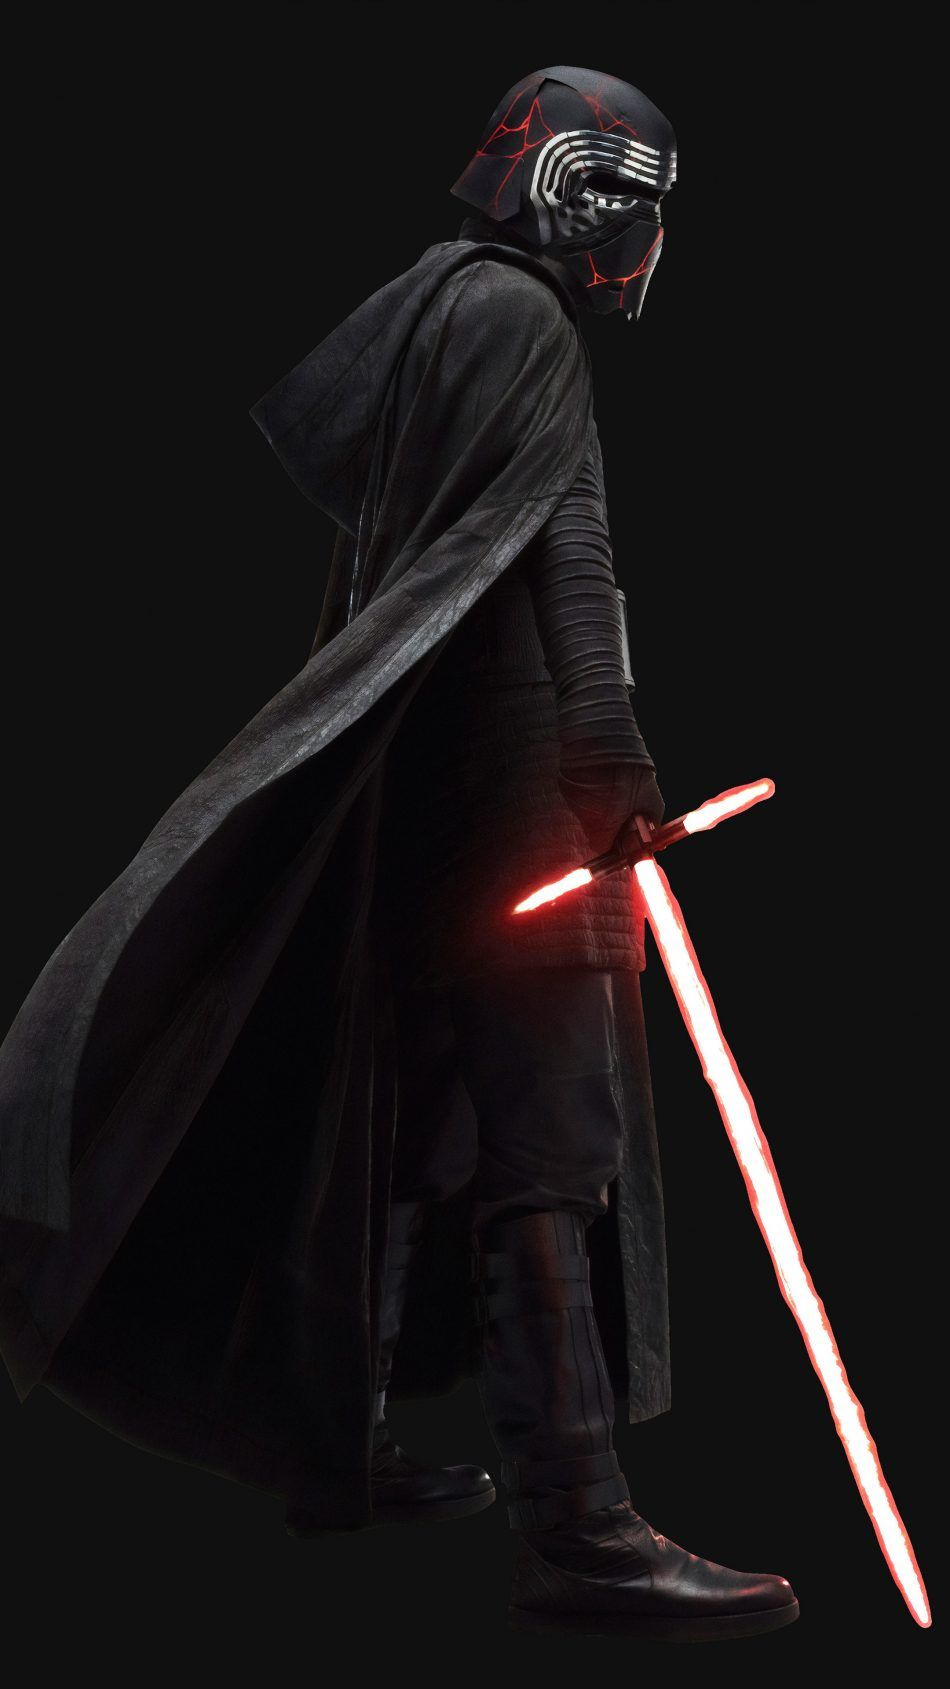 100 Kylo Ren Ideas In 2020 Kylo Ren Star Wars Kylo Ren Star Wars Art